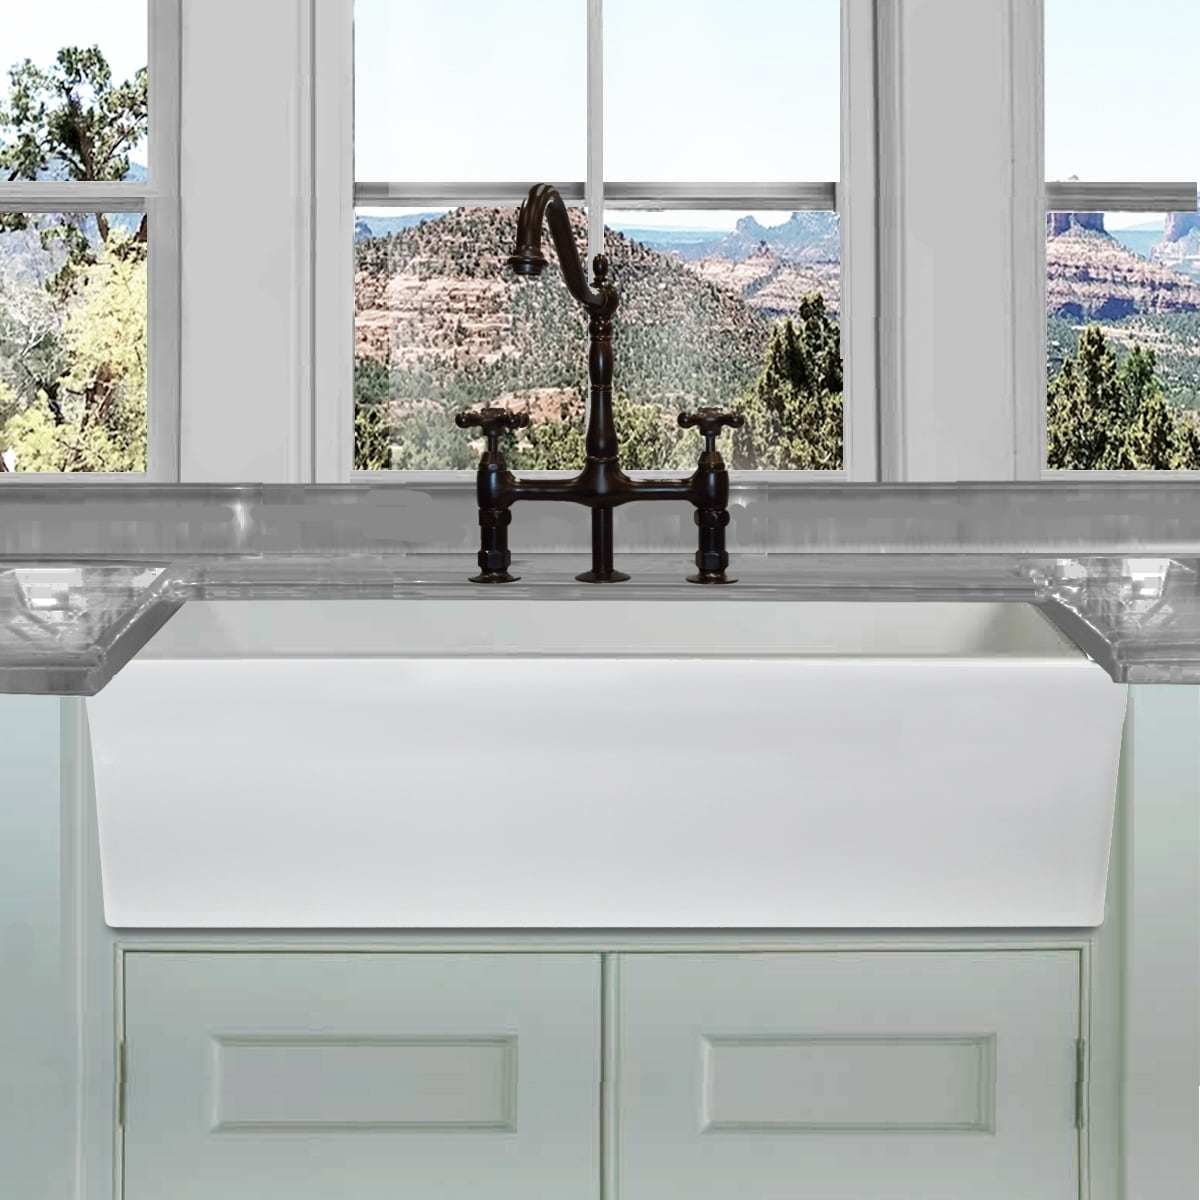 White Farmhouse Sinks For Sale Highpoint Collection White 36 Inch Single Bowl Rectangle Fireclay Farmhouse Kitchen Sink